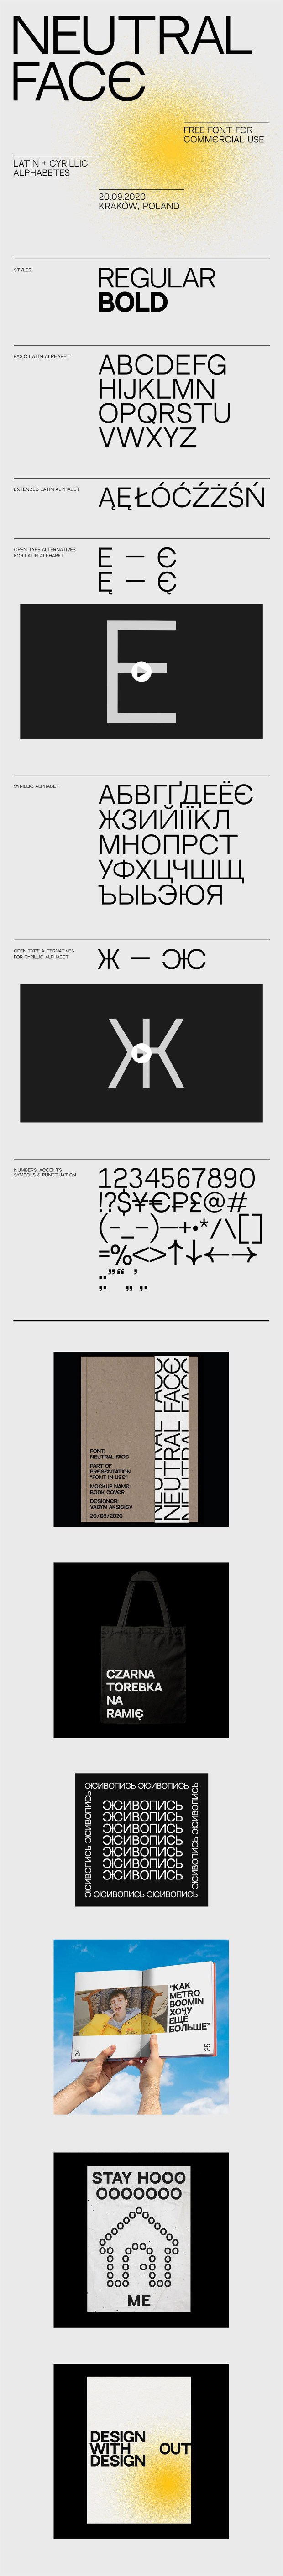 Neutral Face Free Font